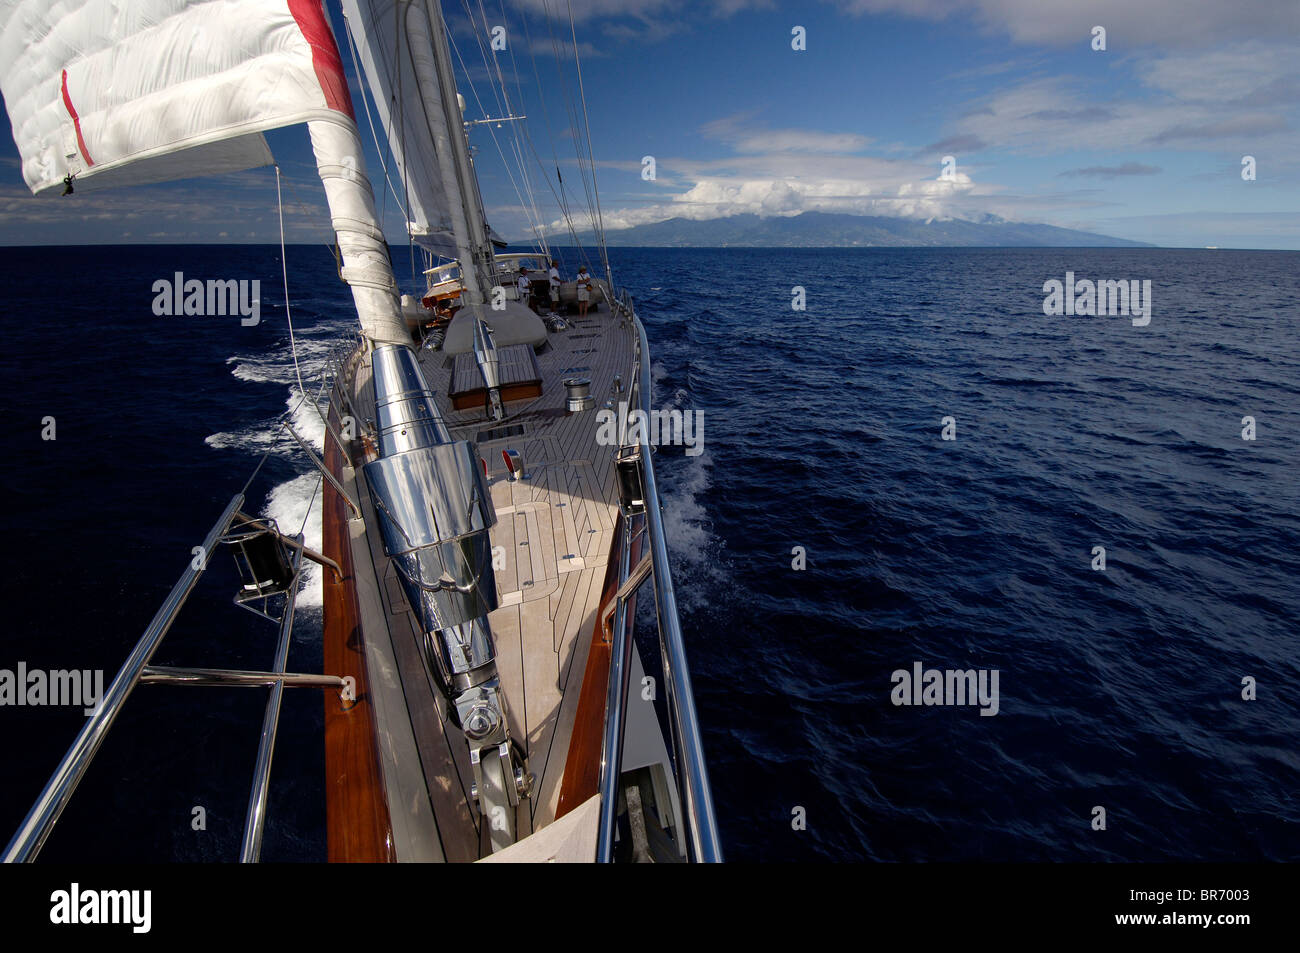 Dramatic photo taken from the bow of SY 'Adele', 180 foot Hoek Design, sailing in French Polynesia, 2006. - Stock Image